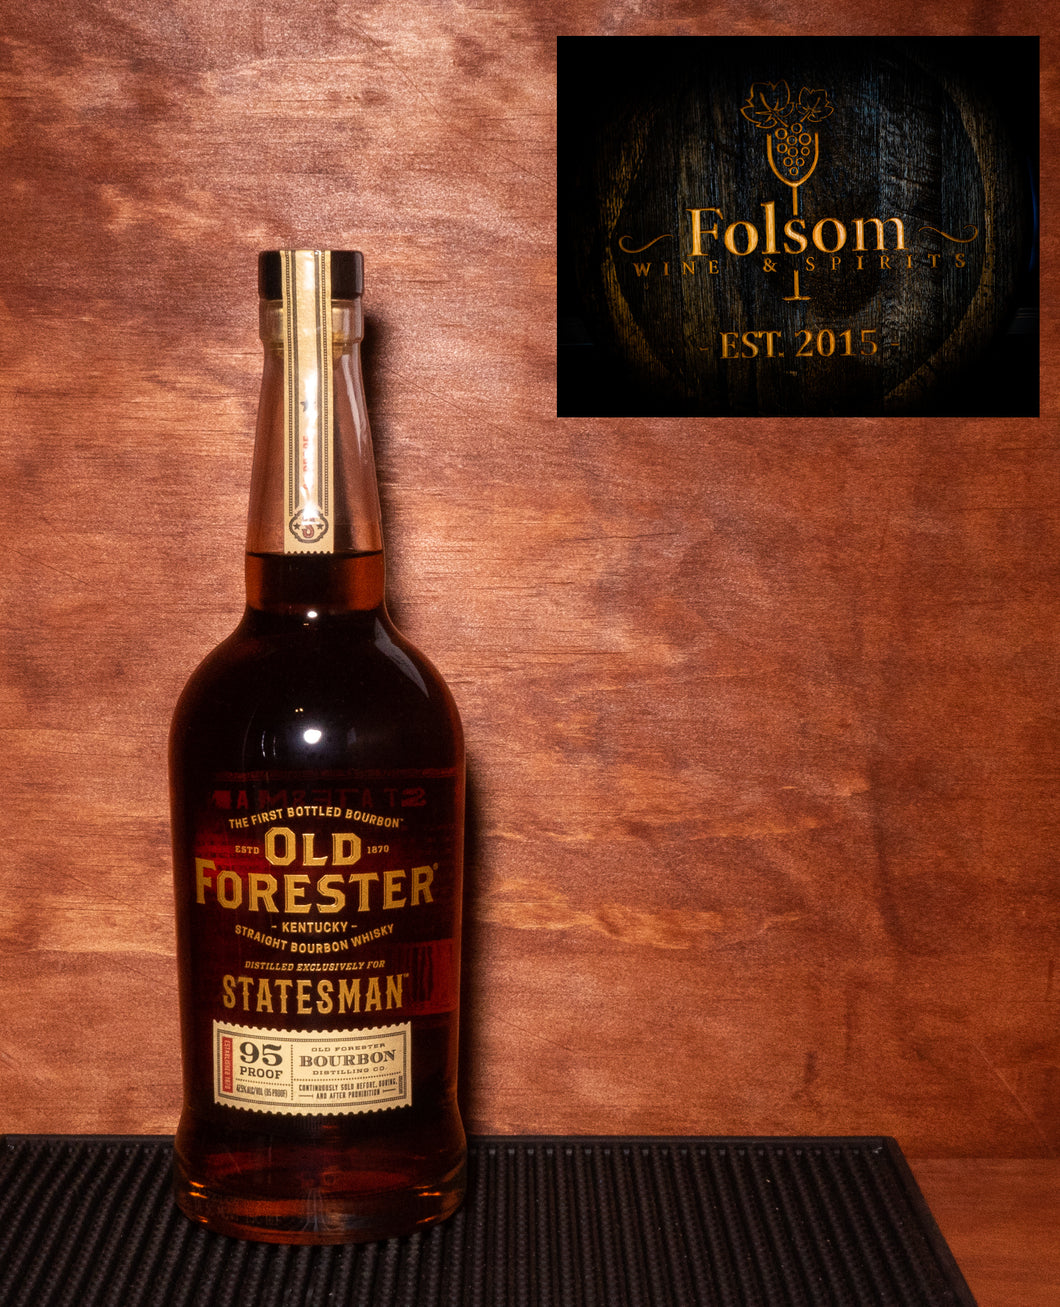 OLD FORESTER STATESMEN